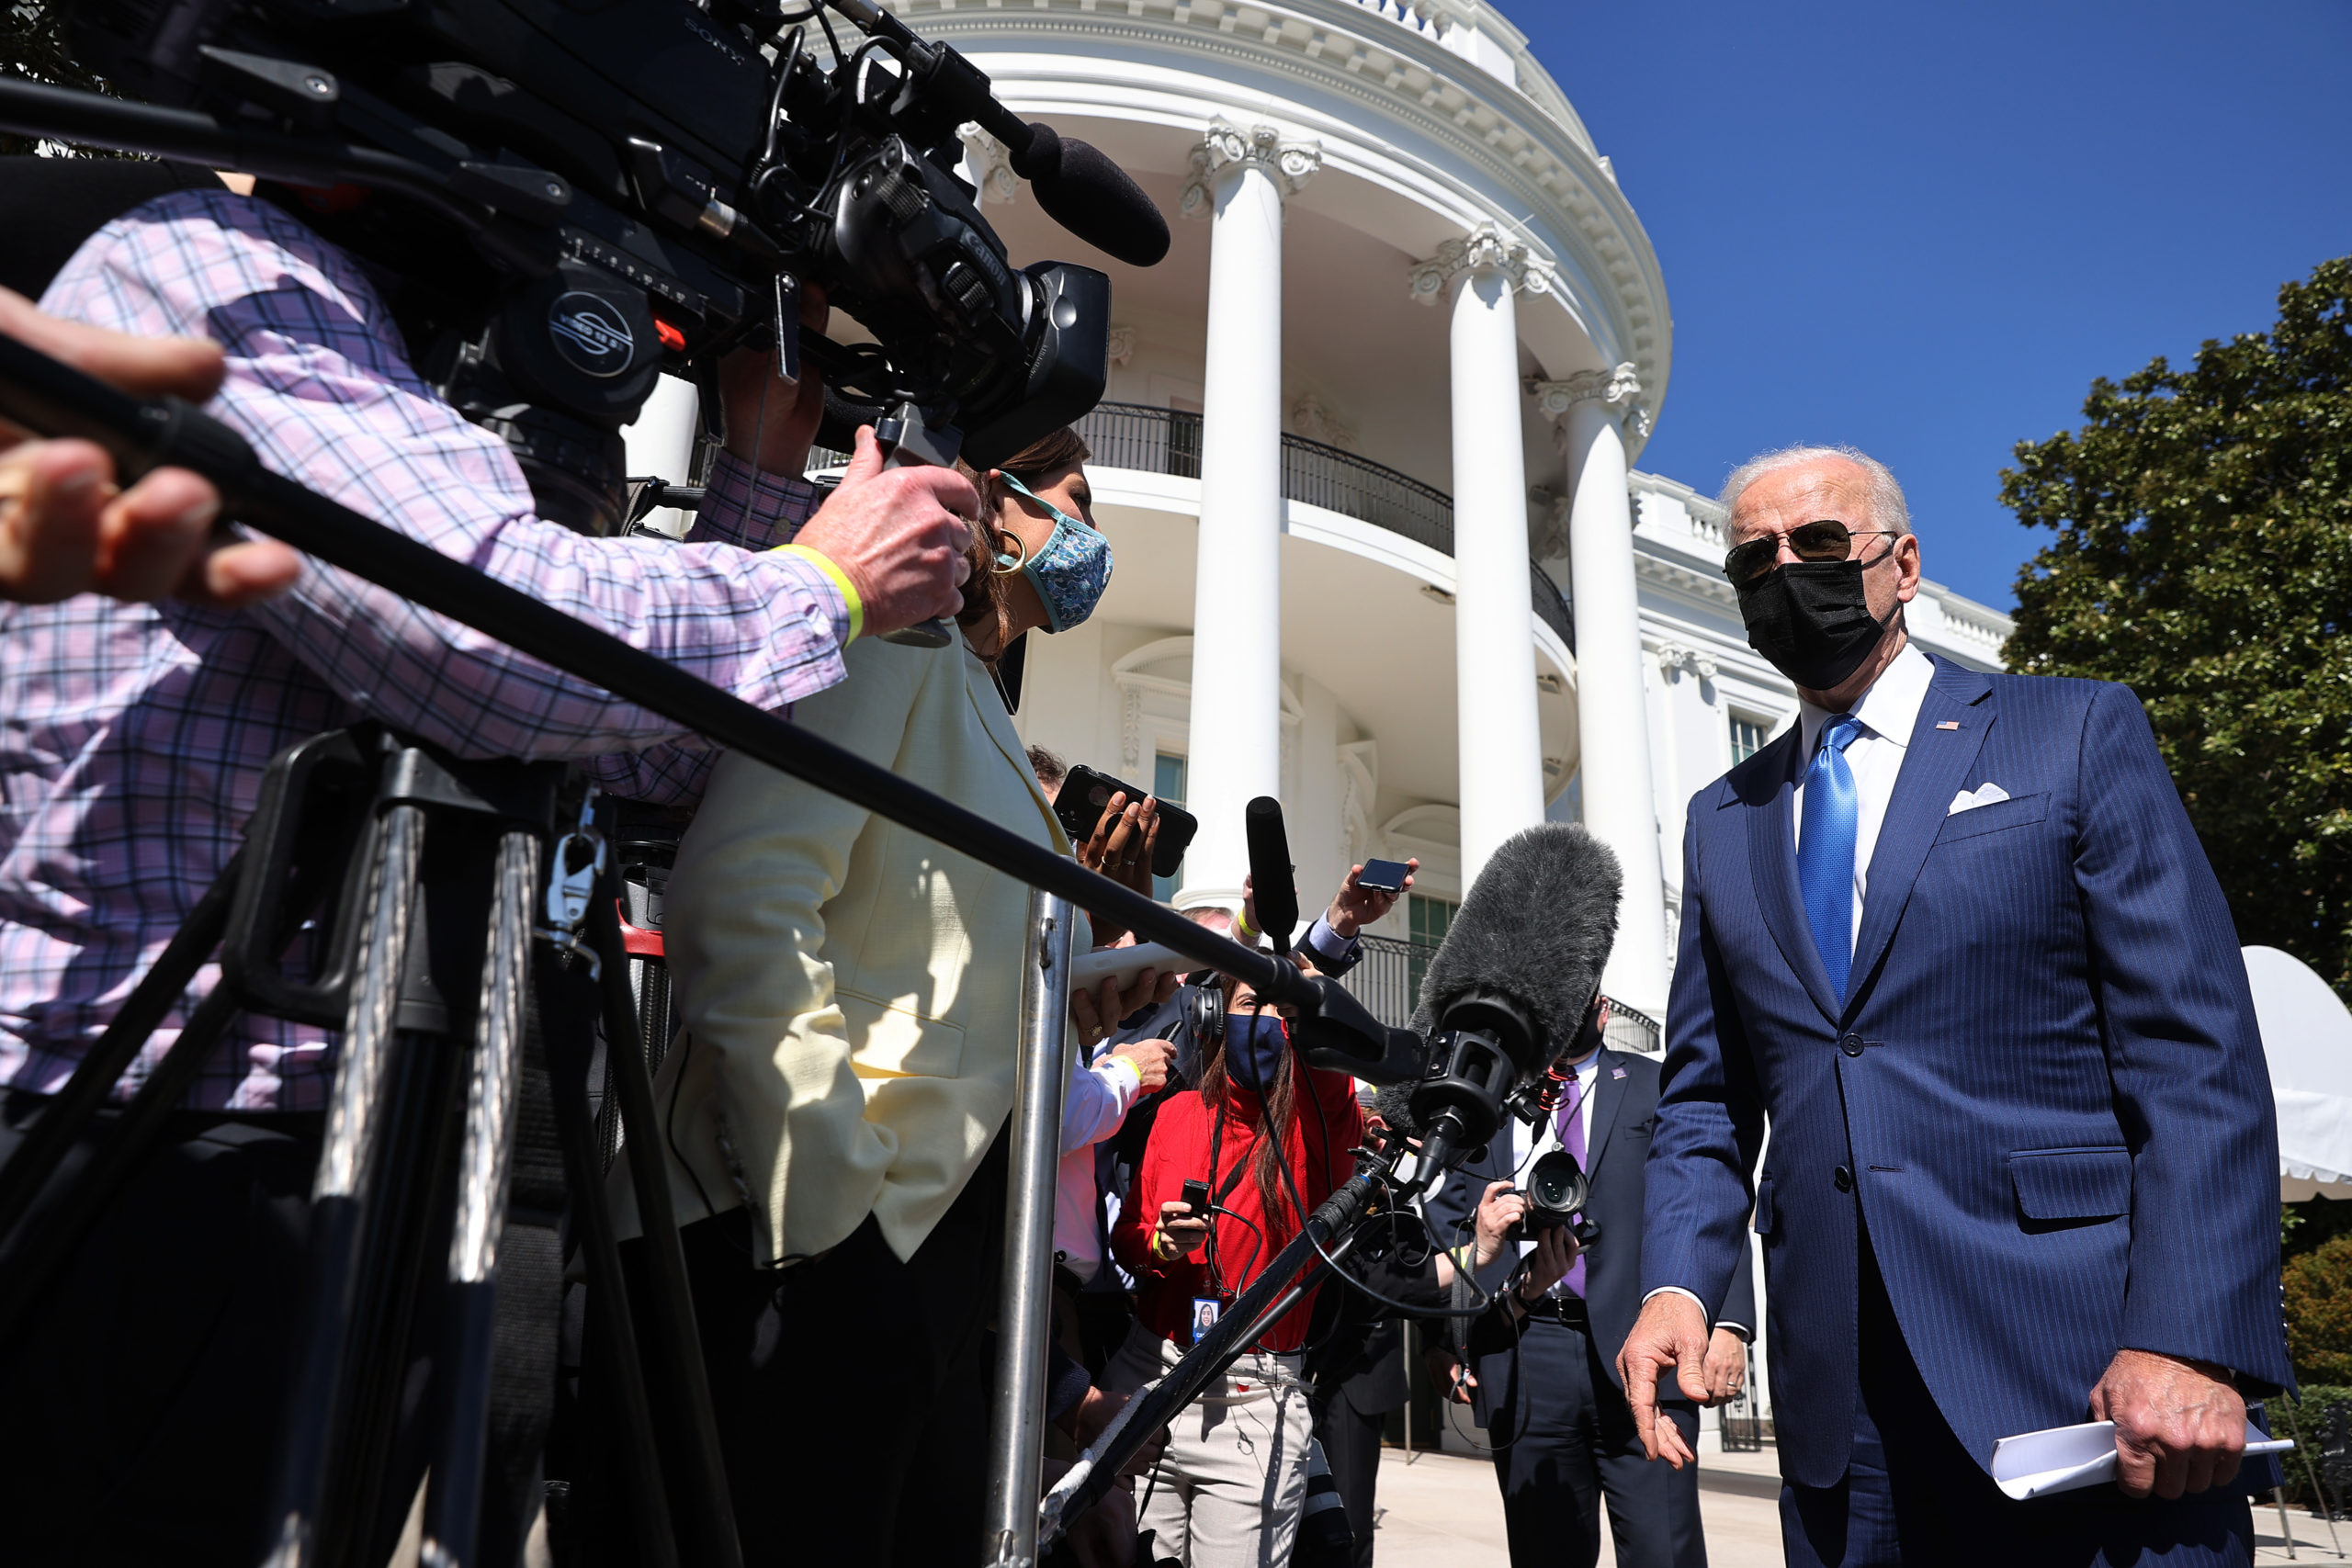 WASHINGTON, DC - MARCH 26: U.S. President Joe Biden talks to reporters as he departs the White House on March 26, 2021 in Washington, DC. Biden is traveling to Wilmington, Delaware, to spend the weekend at home. (Photo by Chip Somodevilla/Getty Images)